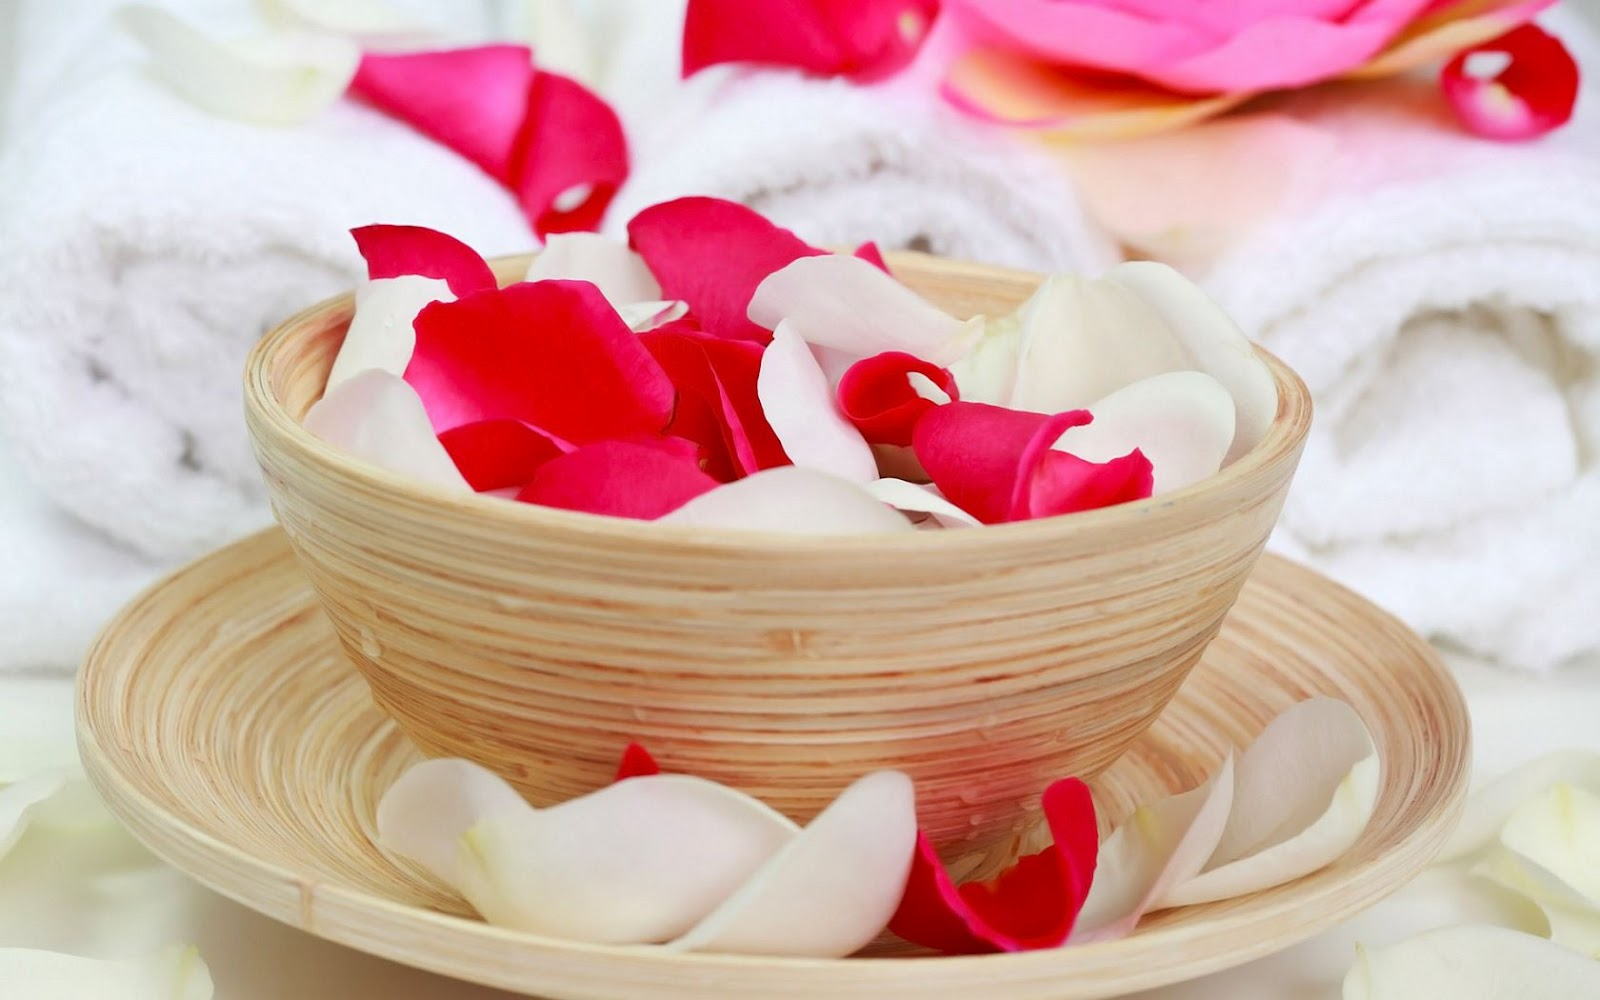 Red White Rose Petals Towels Spa Center Hd Wallpaper Hd Nature